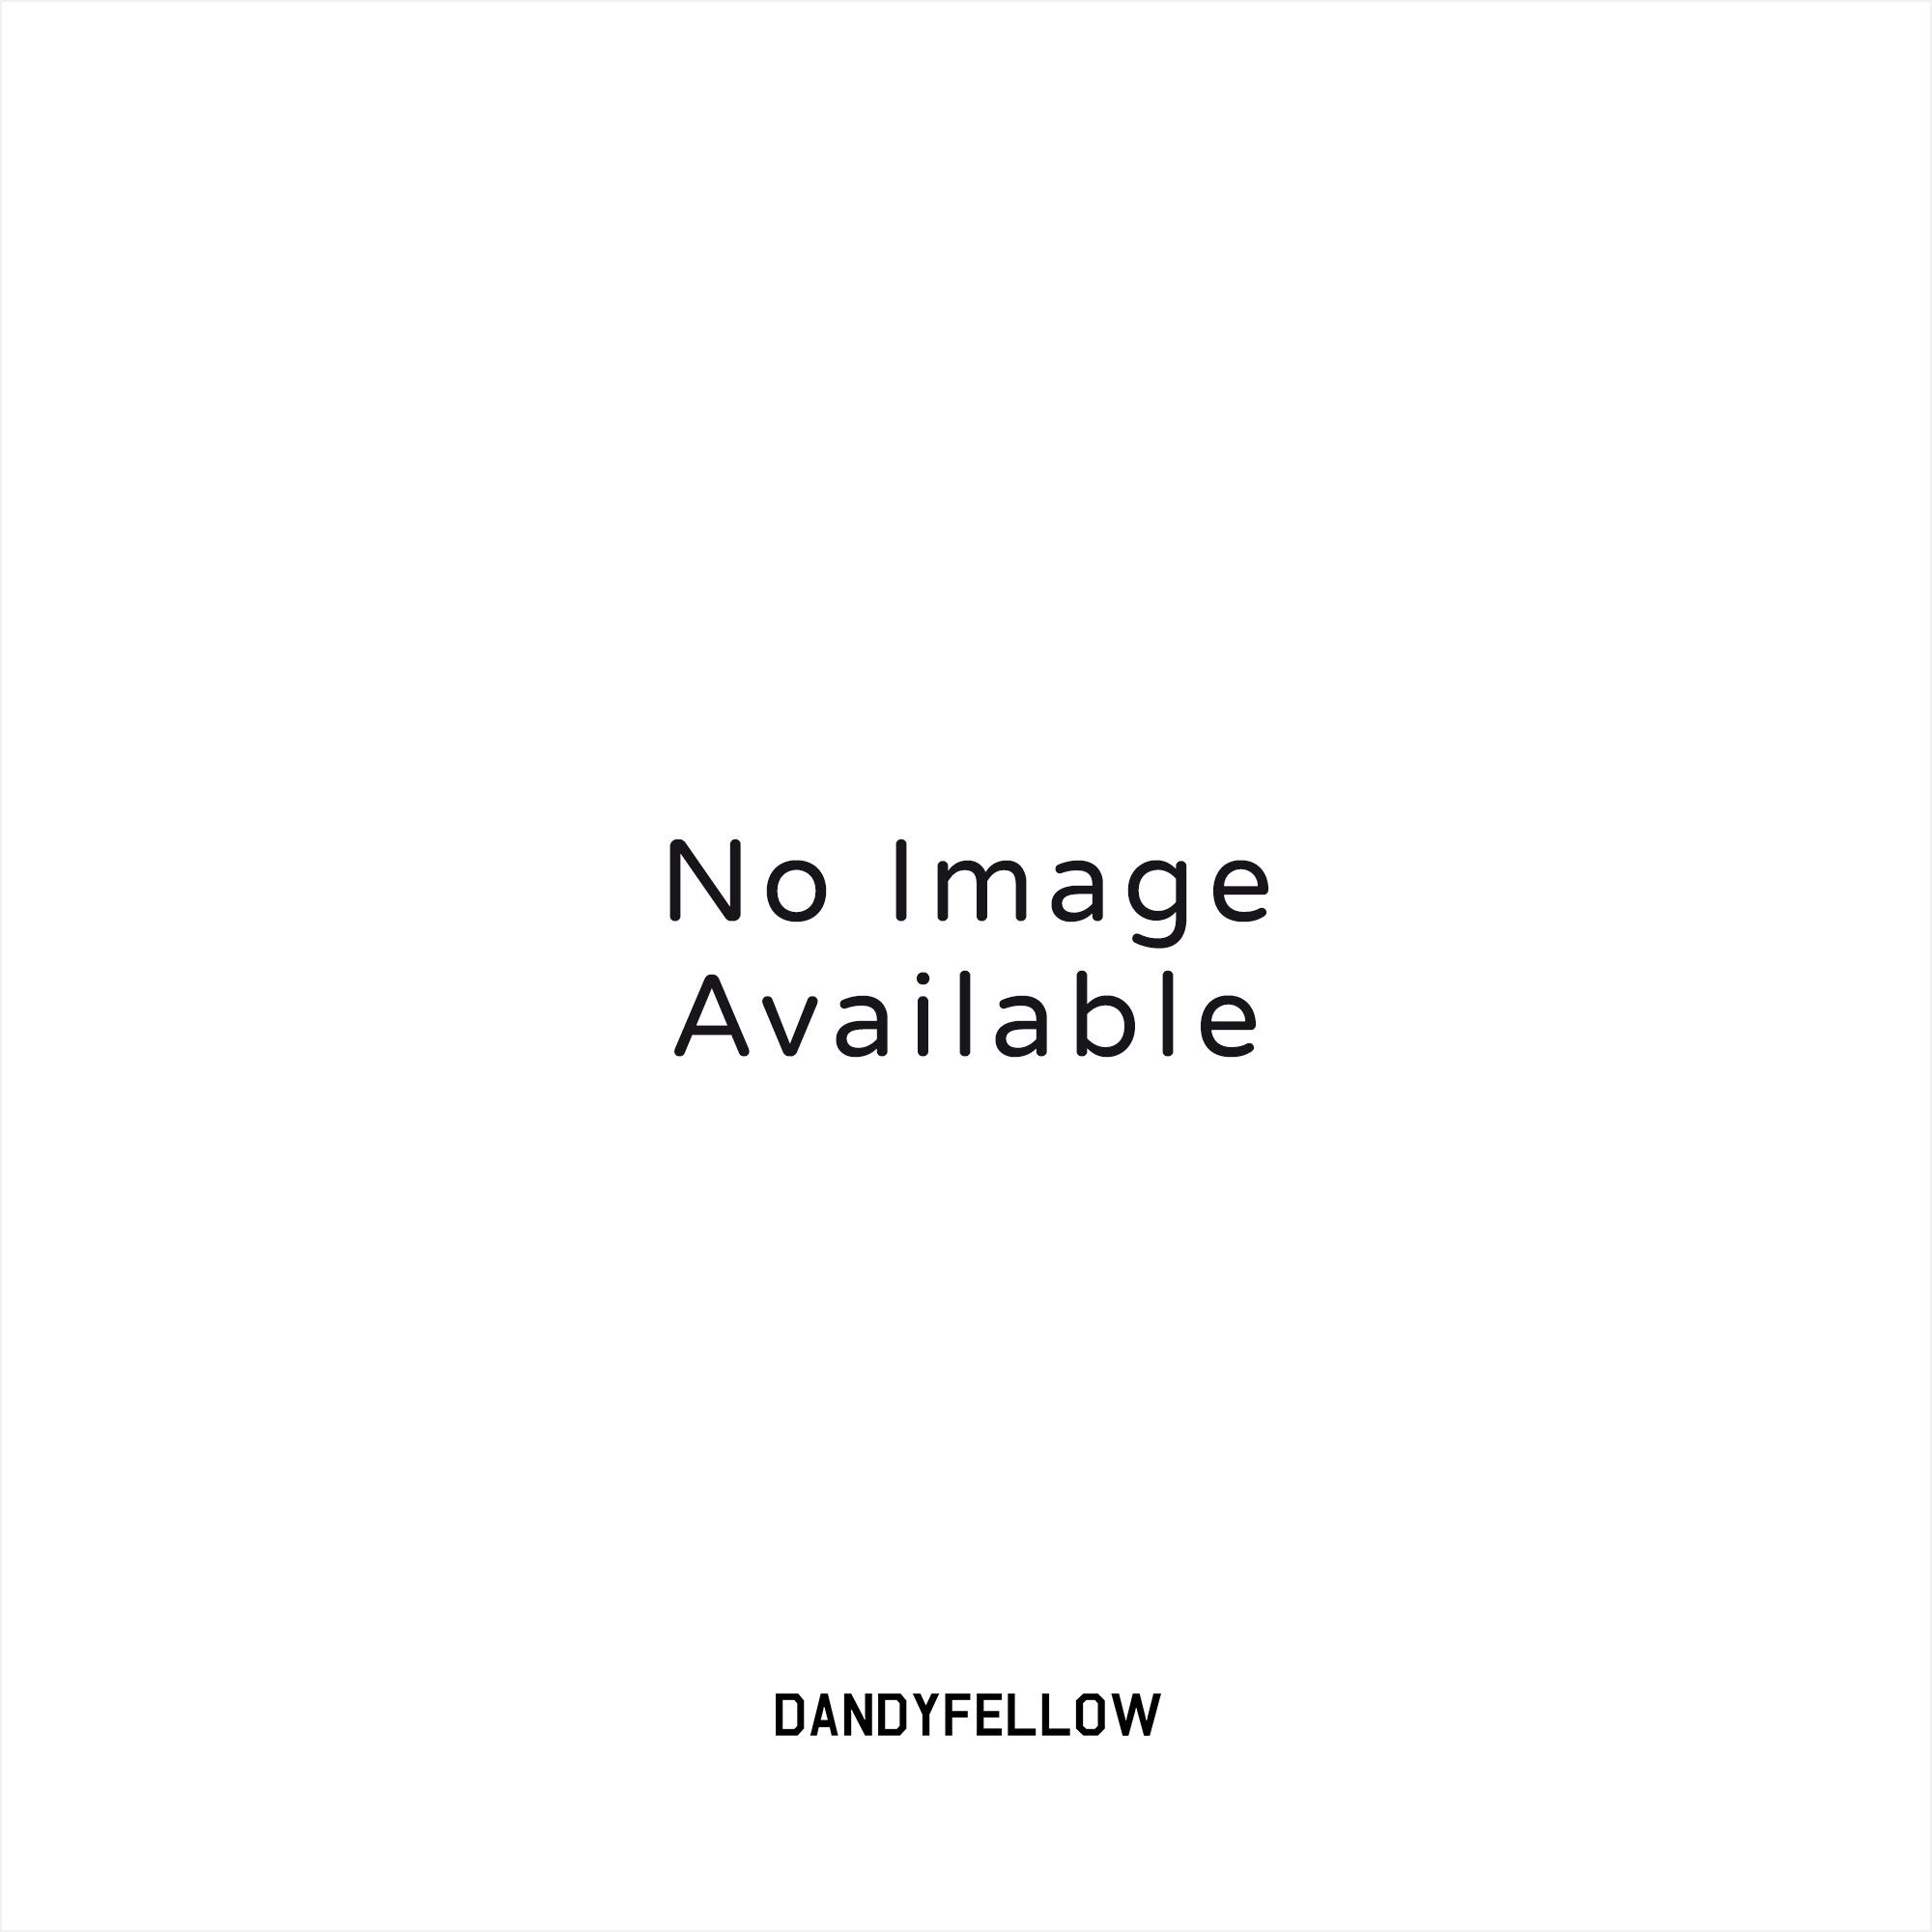 Portuguese Flannel Bela Vista Black Shirt